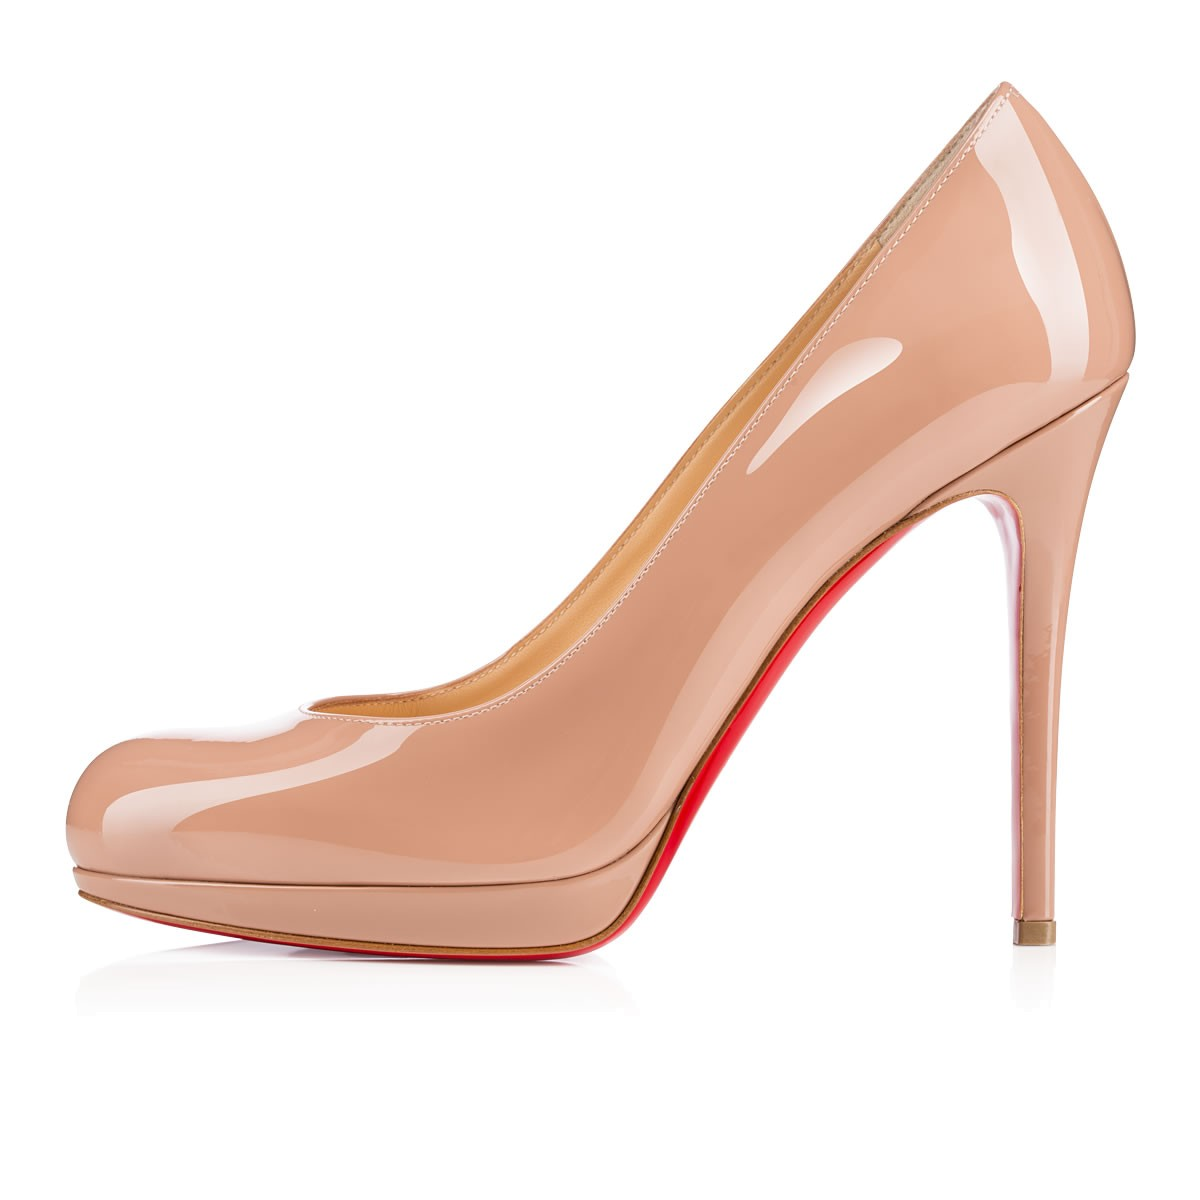 d86c43963af CHRISTIAN LOUBOUTIN NEW SIMPLE PUMP 120MM NUDE PATENT - Reed Fashion ...